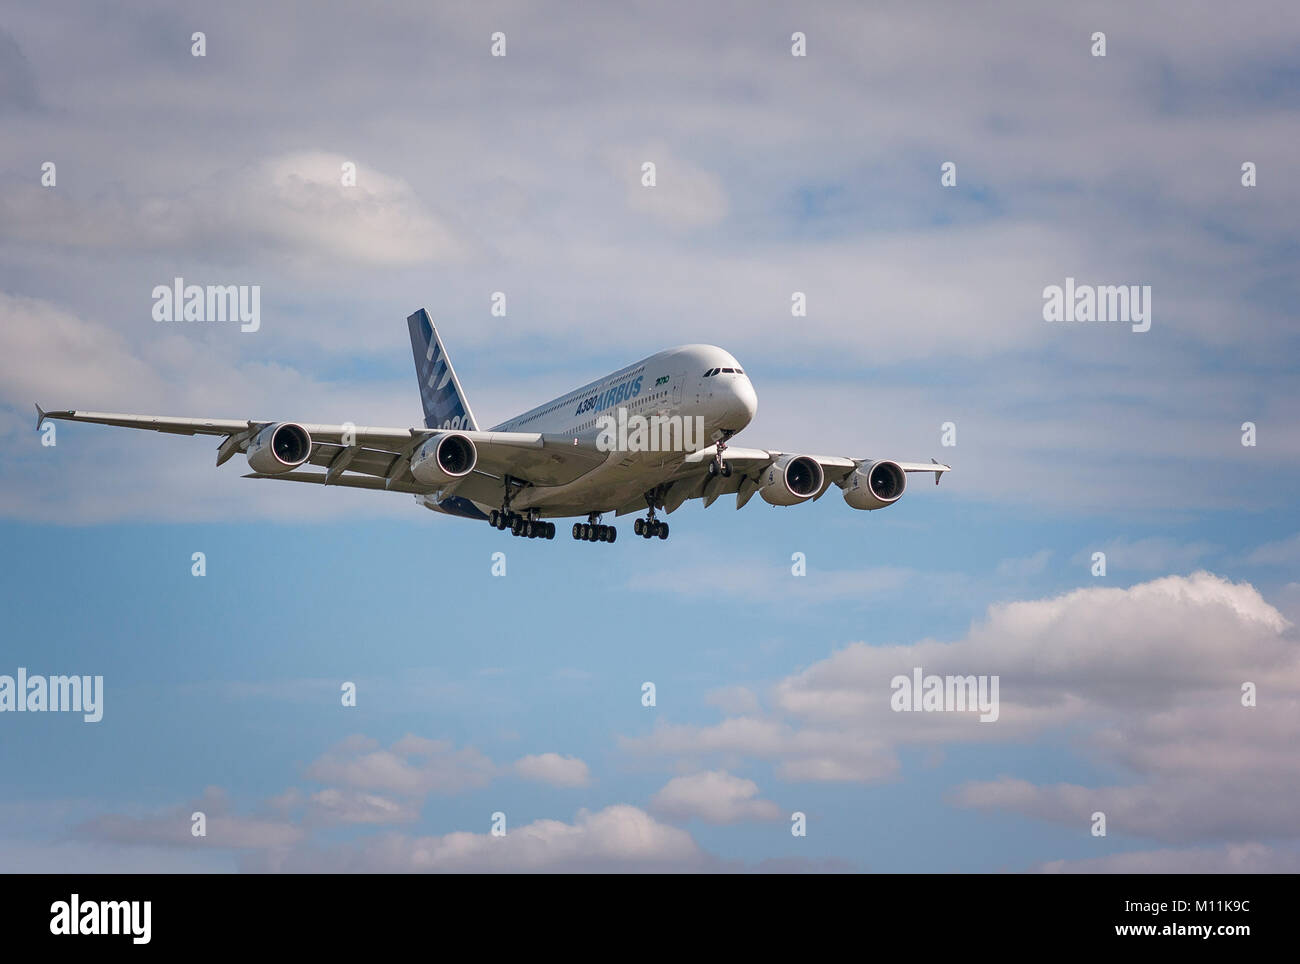 Airbus A380 on a demonstration flight in UK showing four jet engines - Stock Image